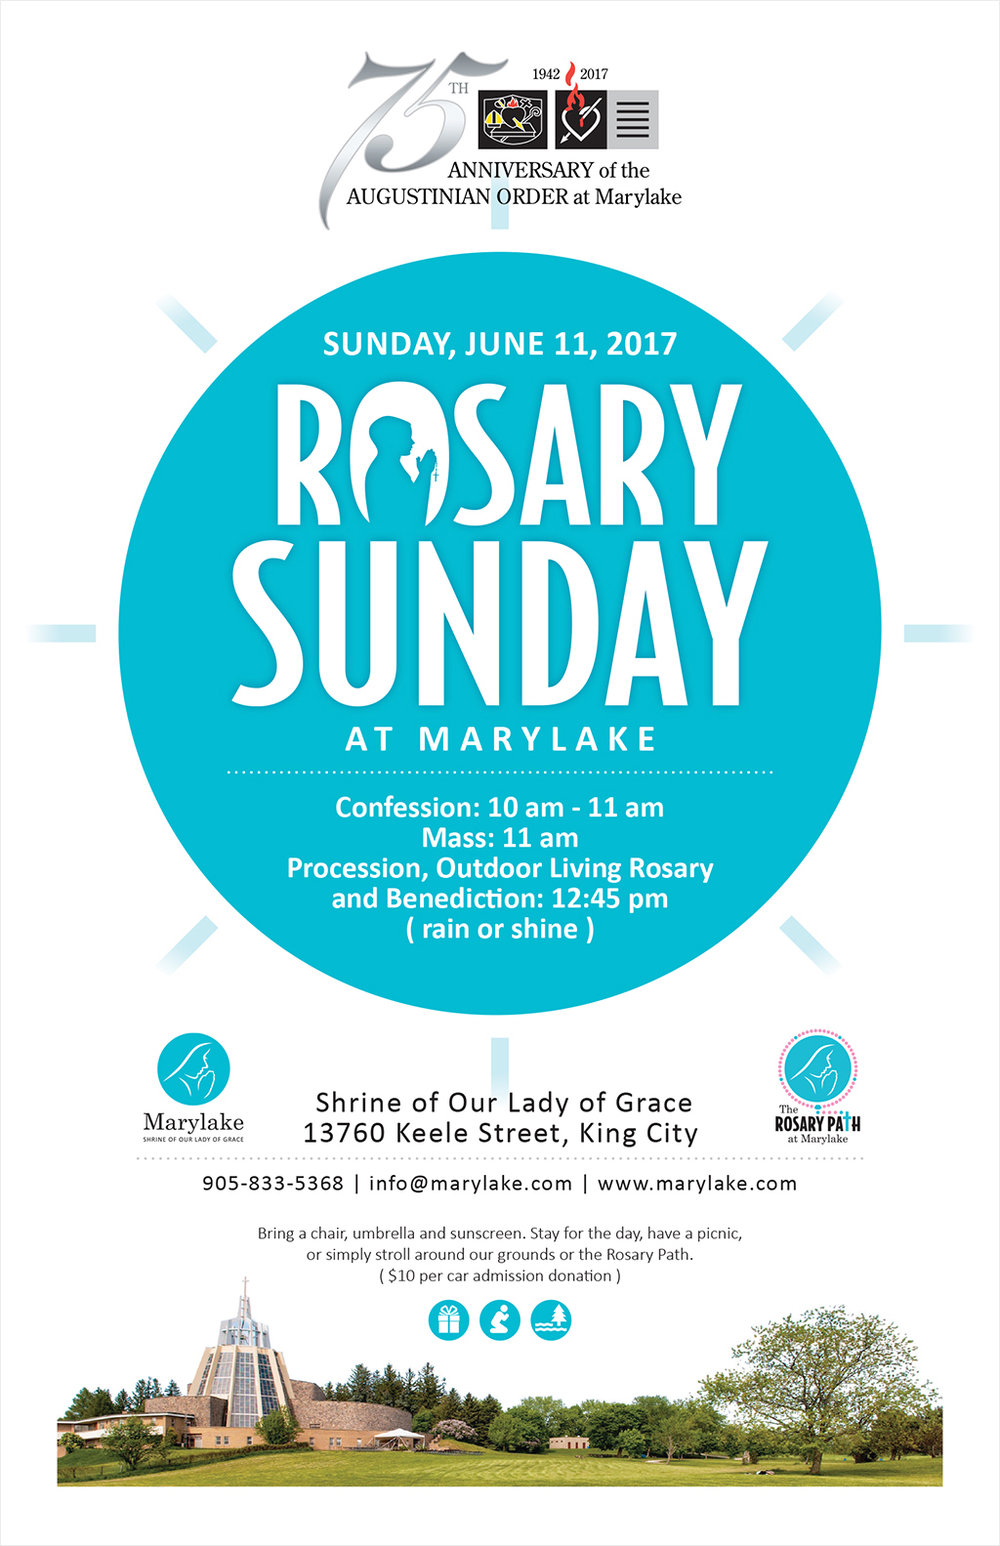 Marylake_Rosary_Sunday_2017